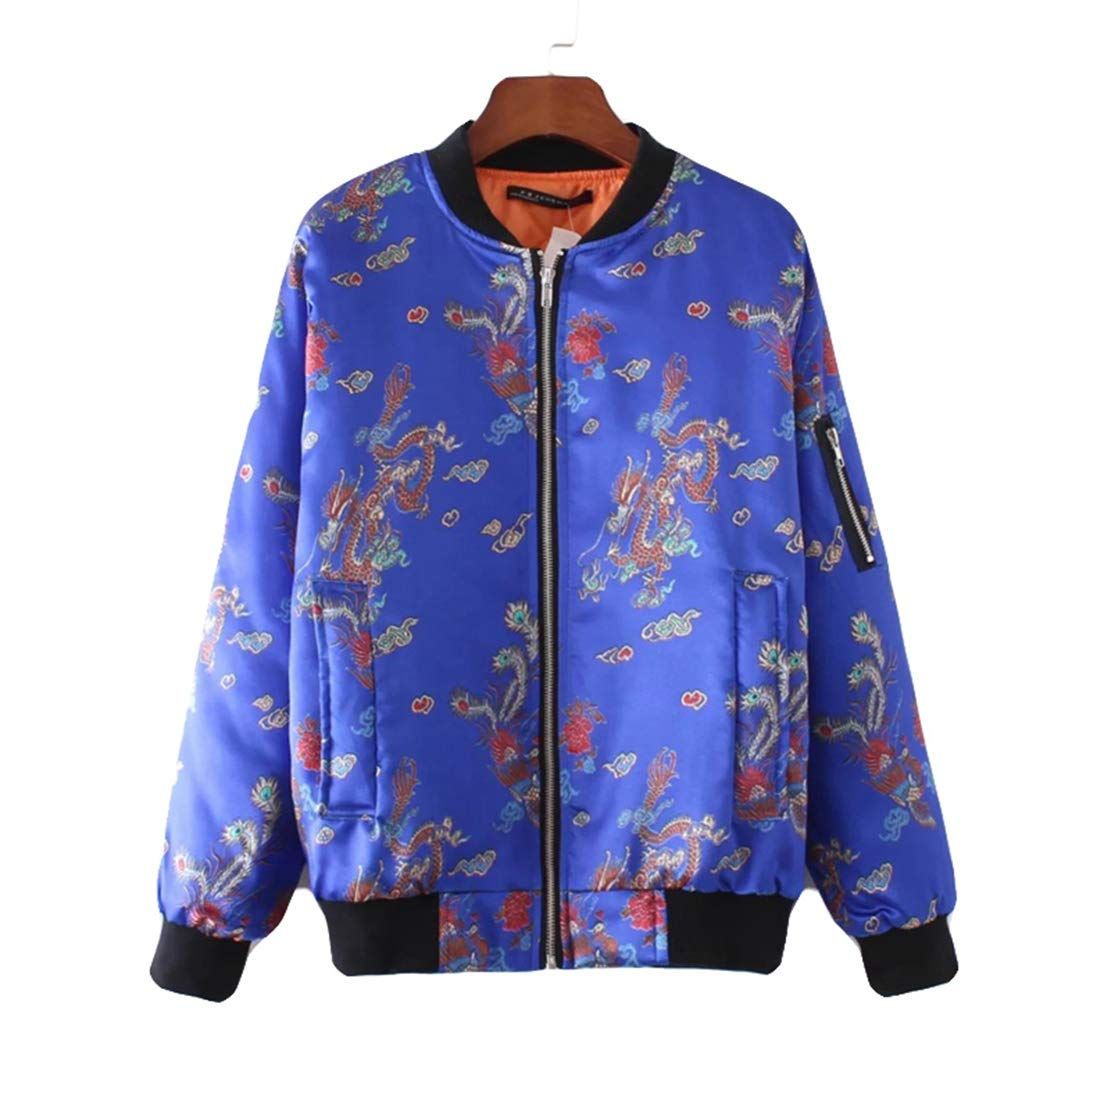 Amazon.com: Women Winter Parkas Blue Print Silk Bomber ...